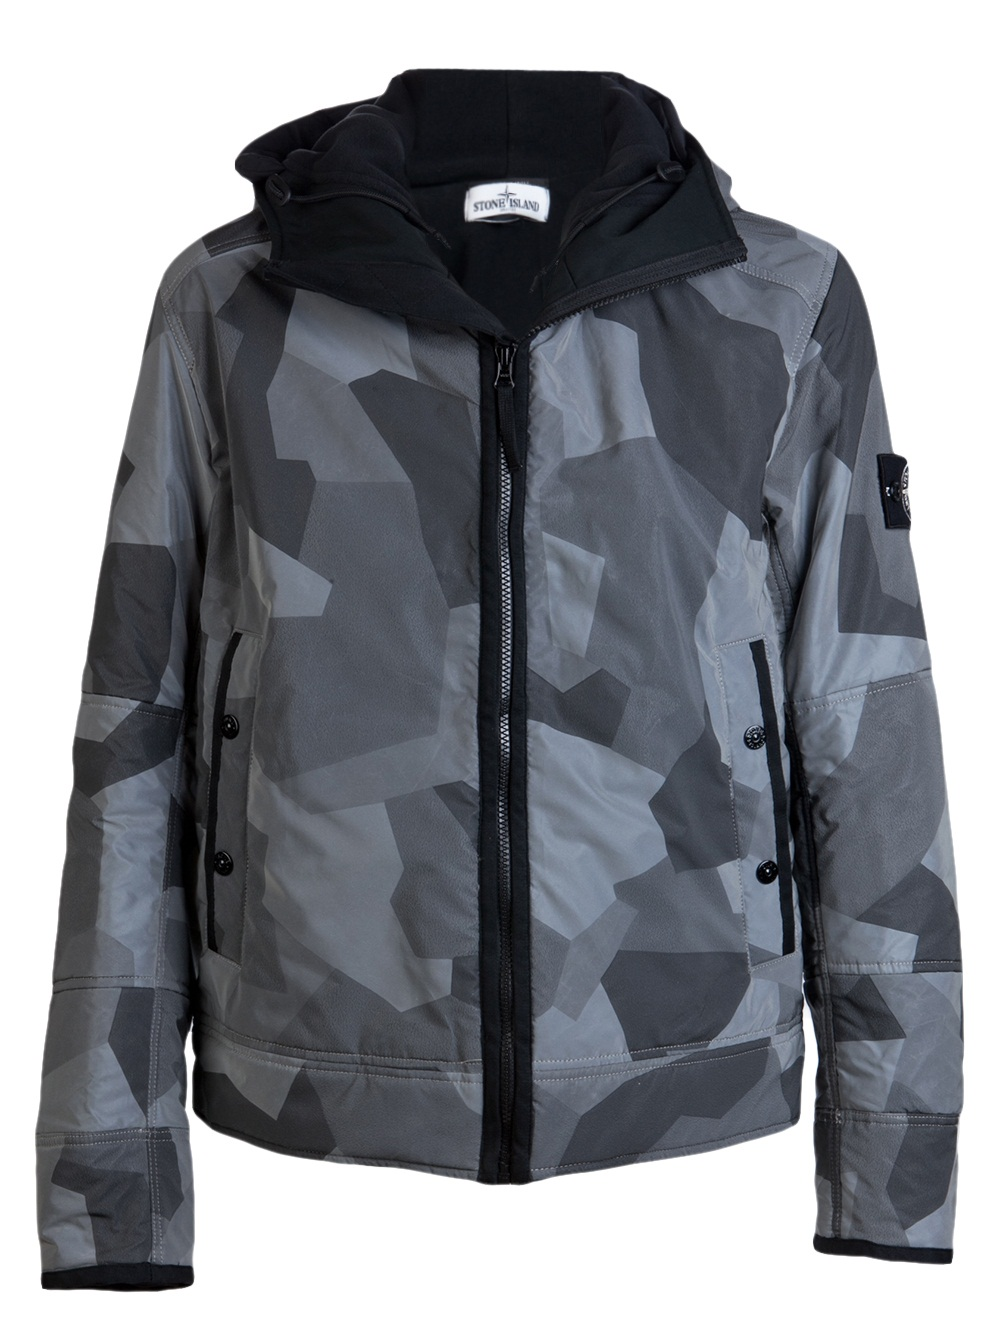 Stone Island Camo Reflective Jacket In Gray For Men Lyst